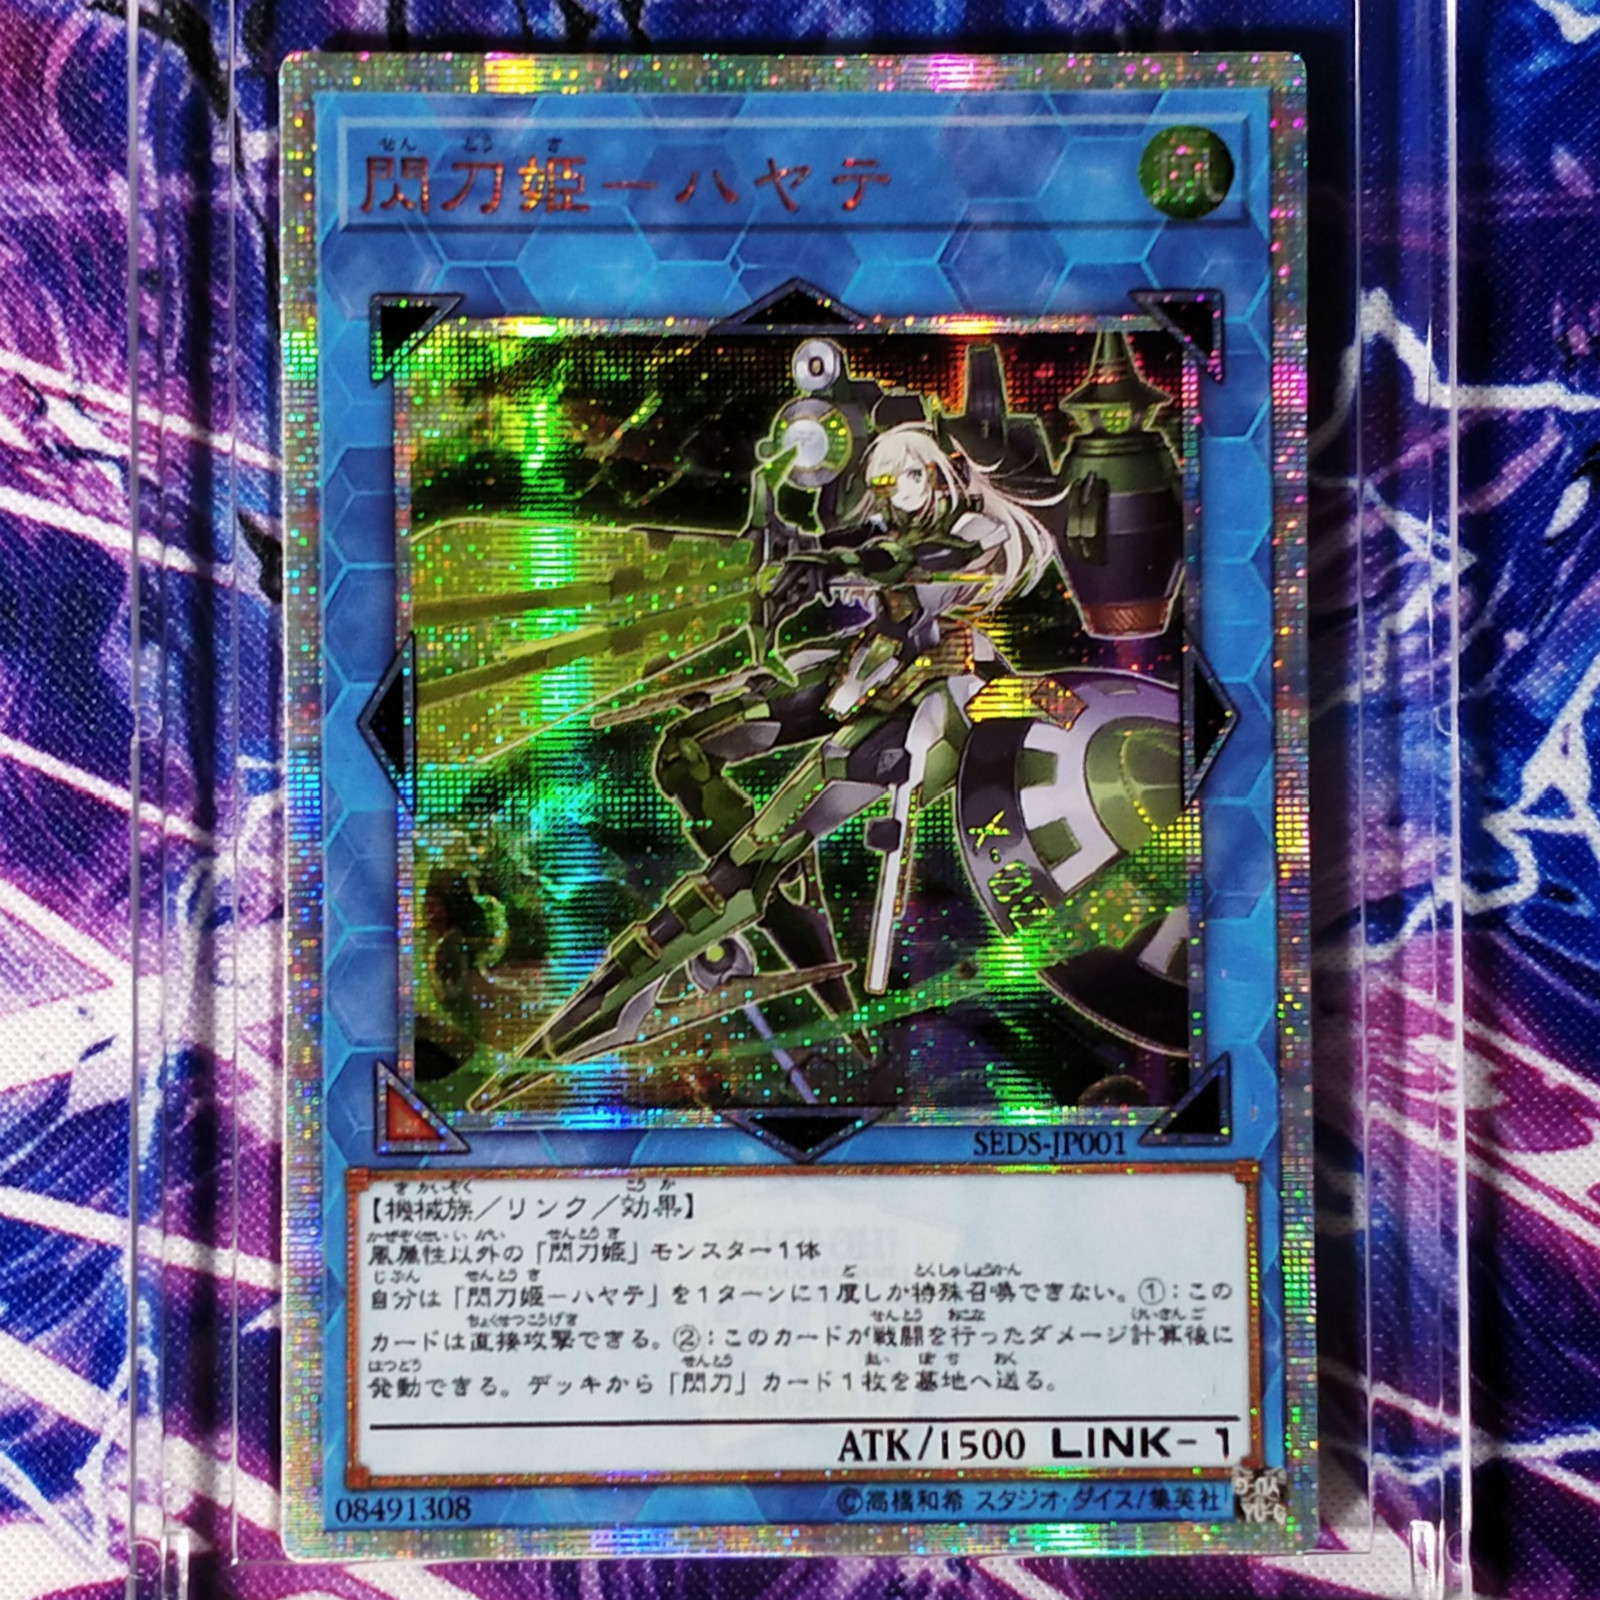 Yu Gi Oh DIY Sky Striker Ace - Hayate Colorful Toys Hobbies Hobby Collectibles Game Collection Anime Cards